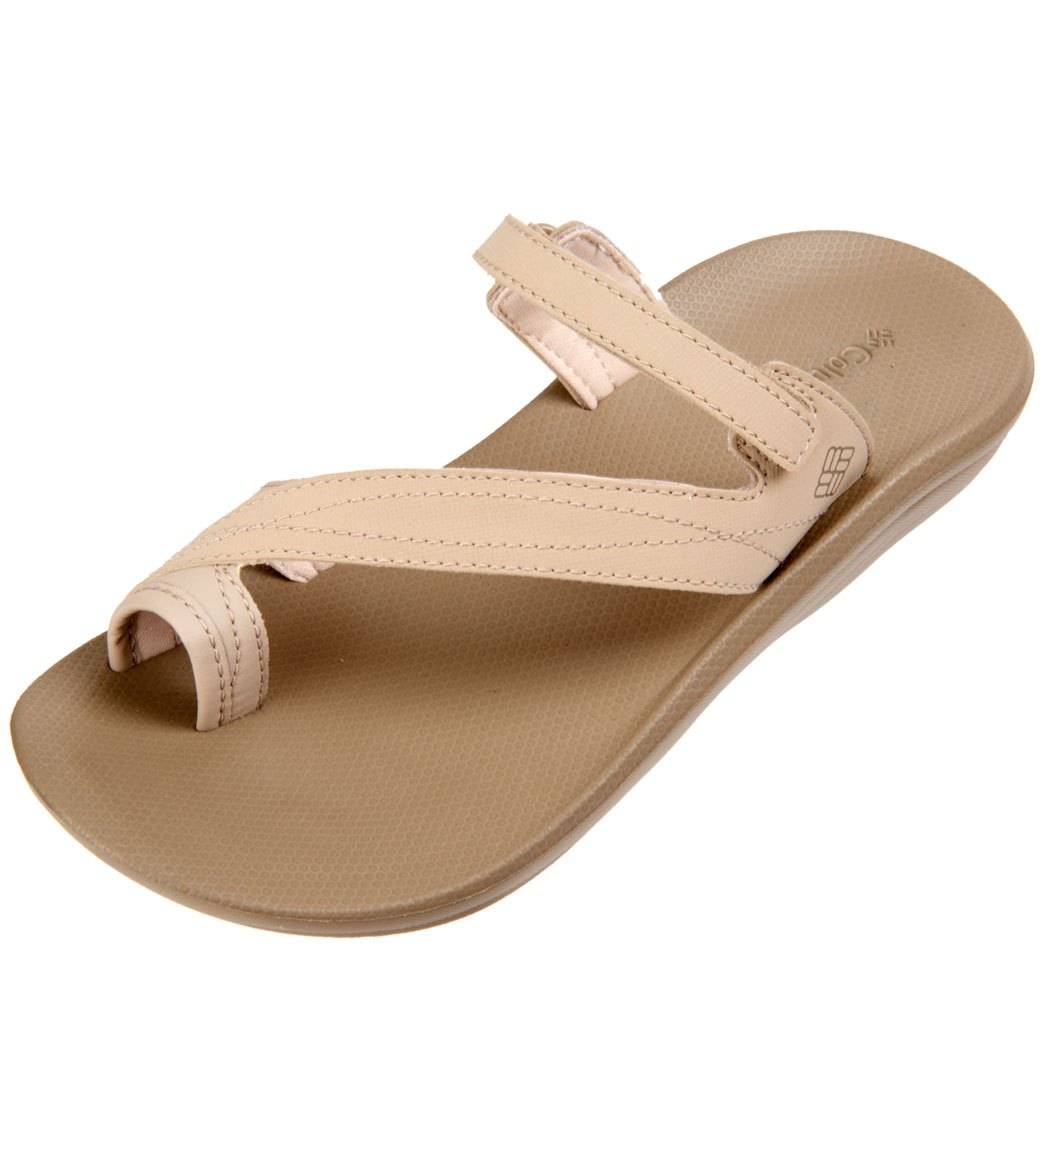 e0eb02a07291 Columbia Women s Barraca Sunrise Sandal at SwimOutlet.com - Free Shipping